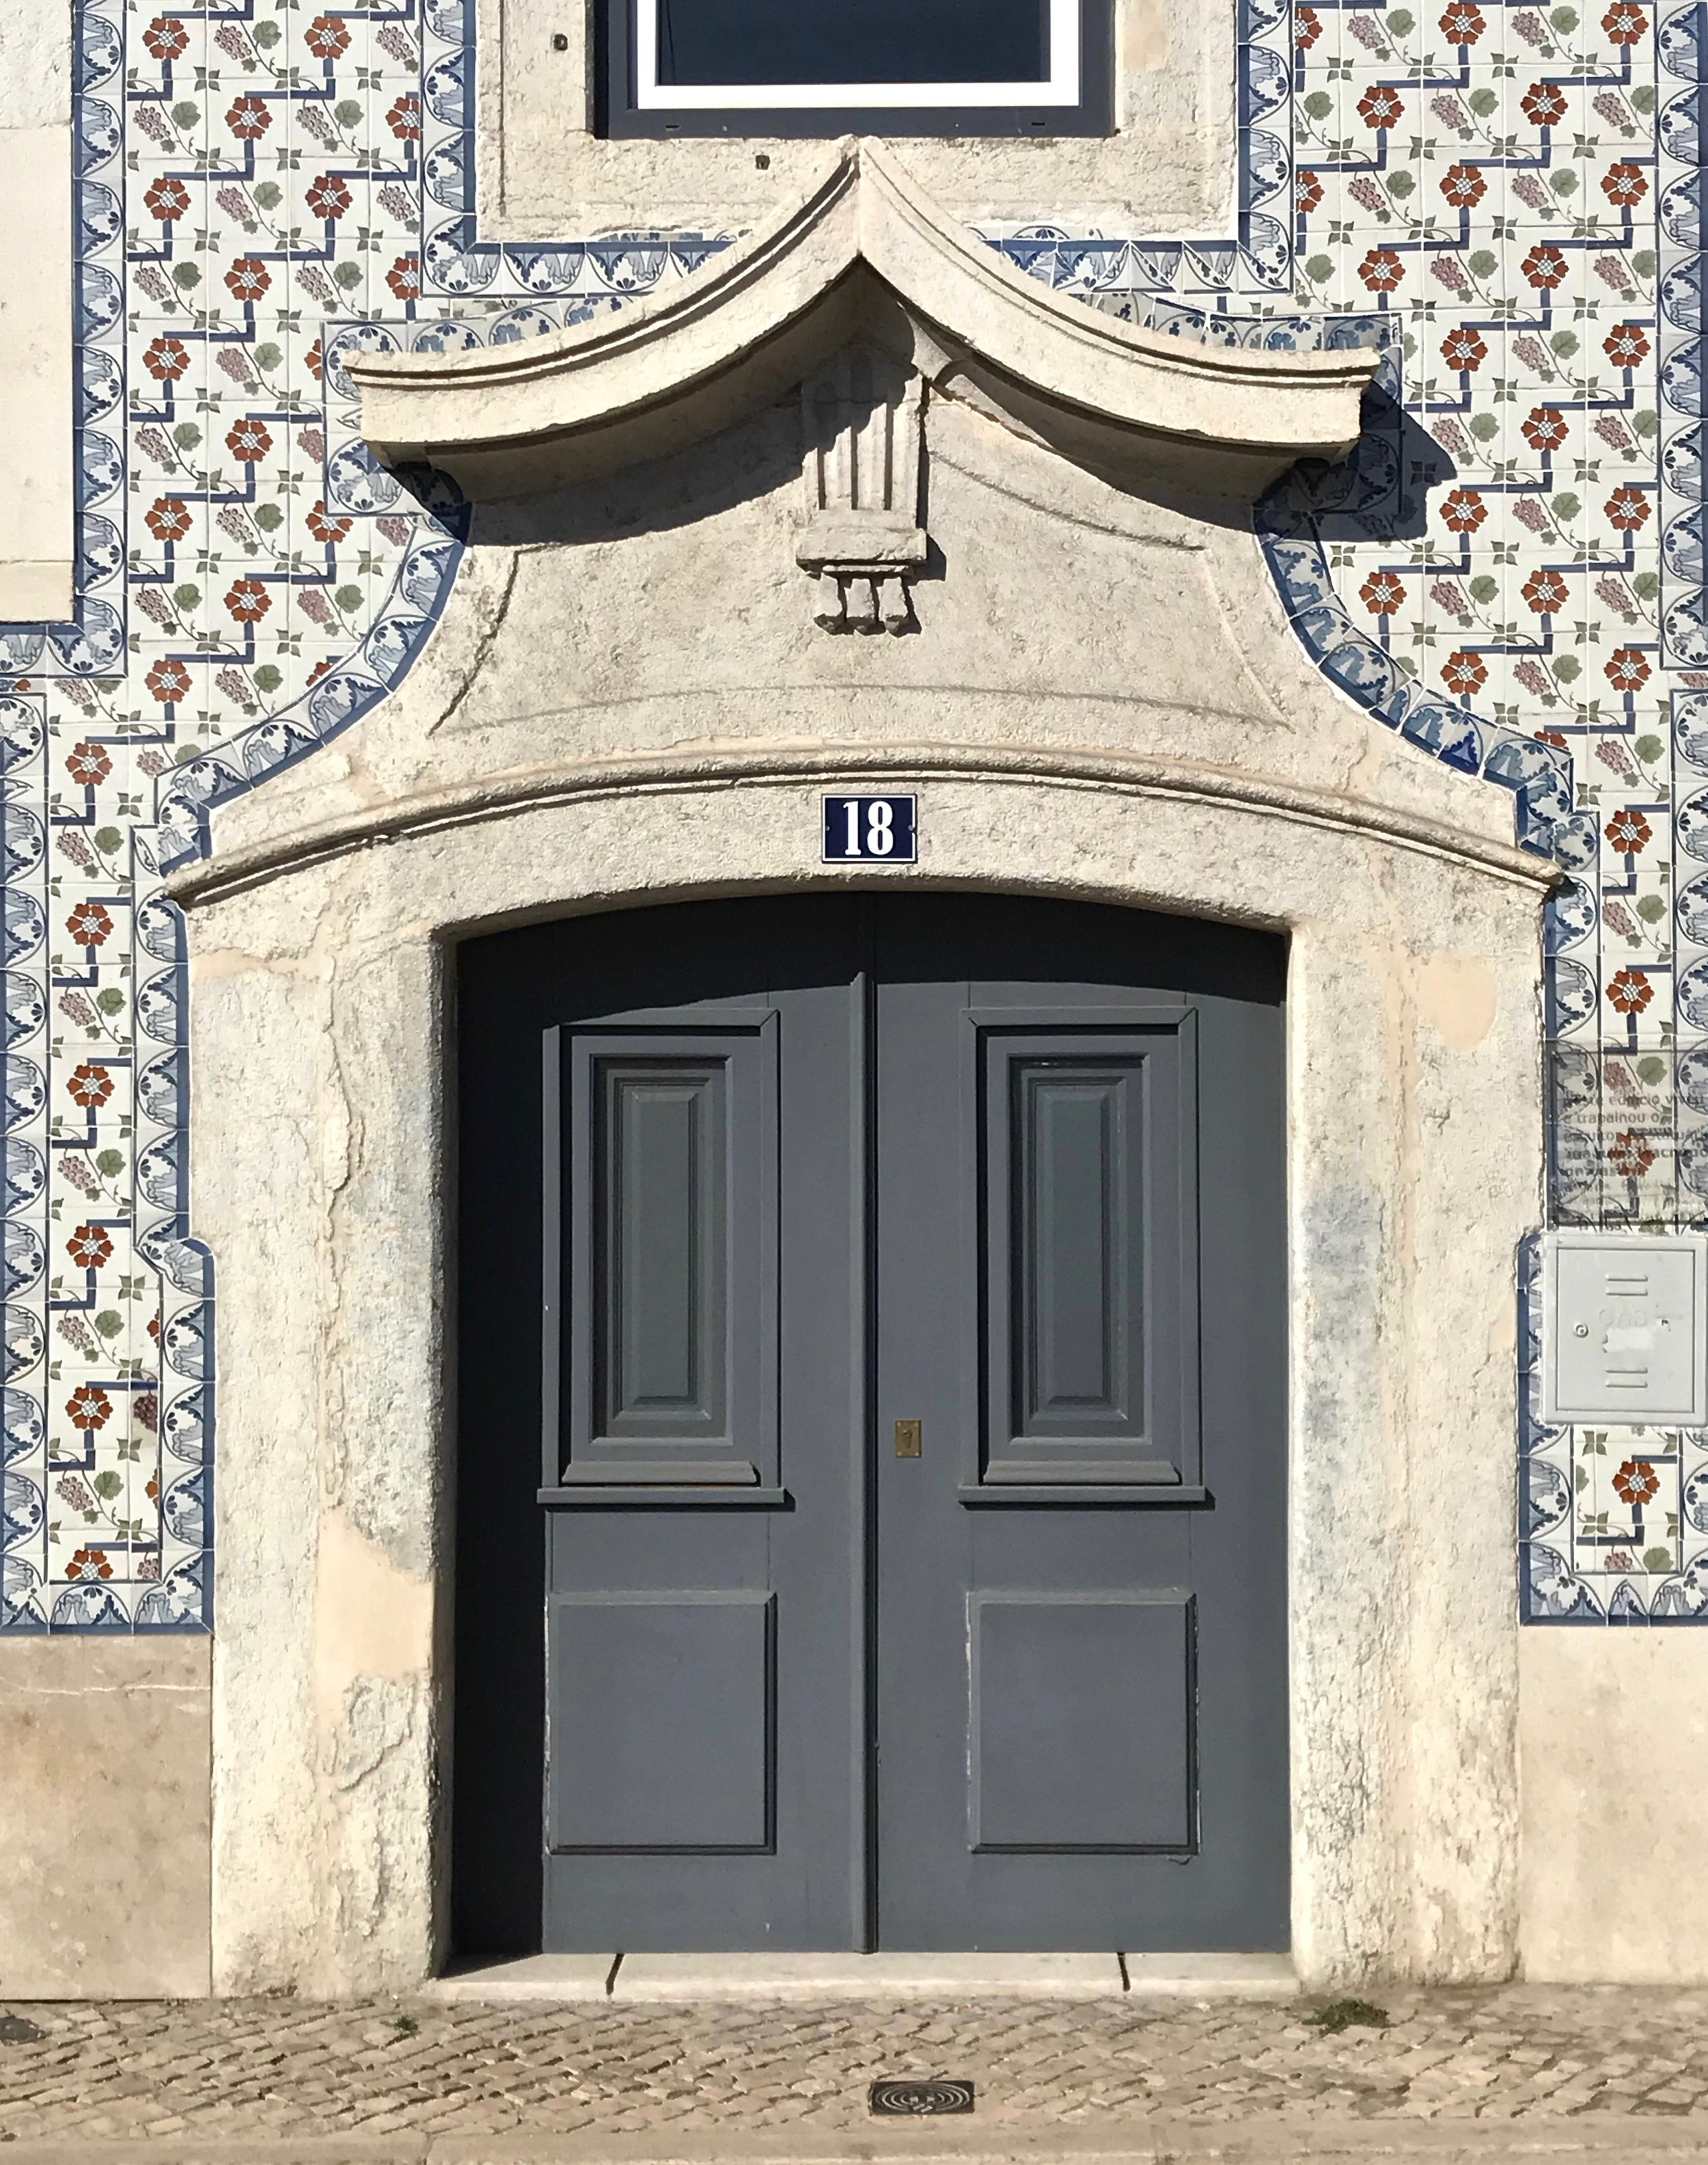 Why are the buildings in Portugal covered in tile?